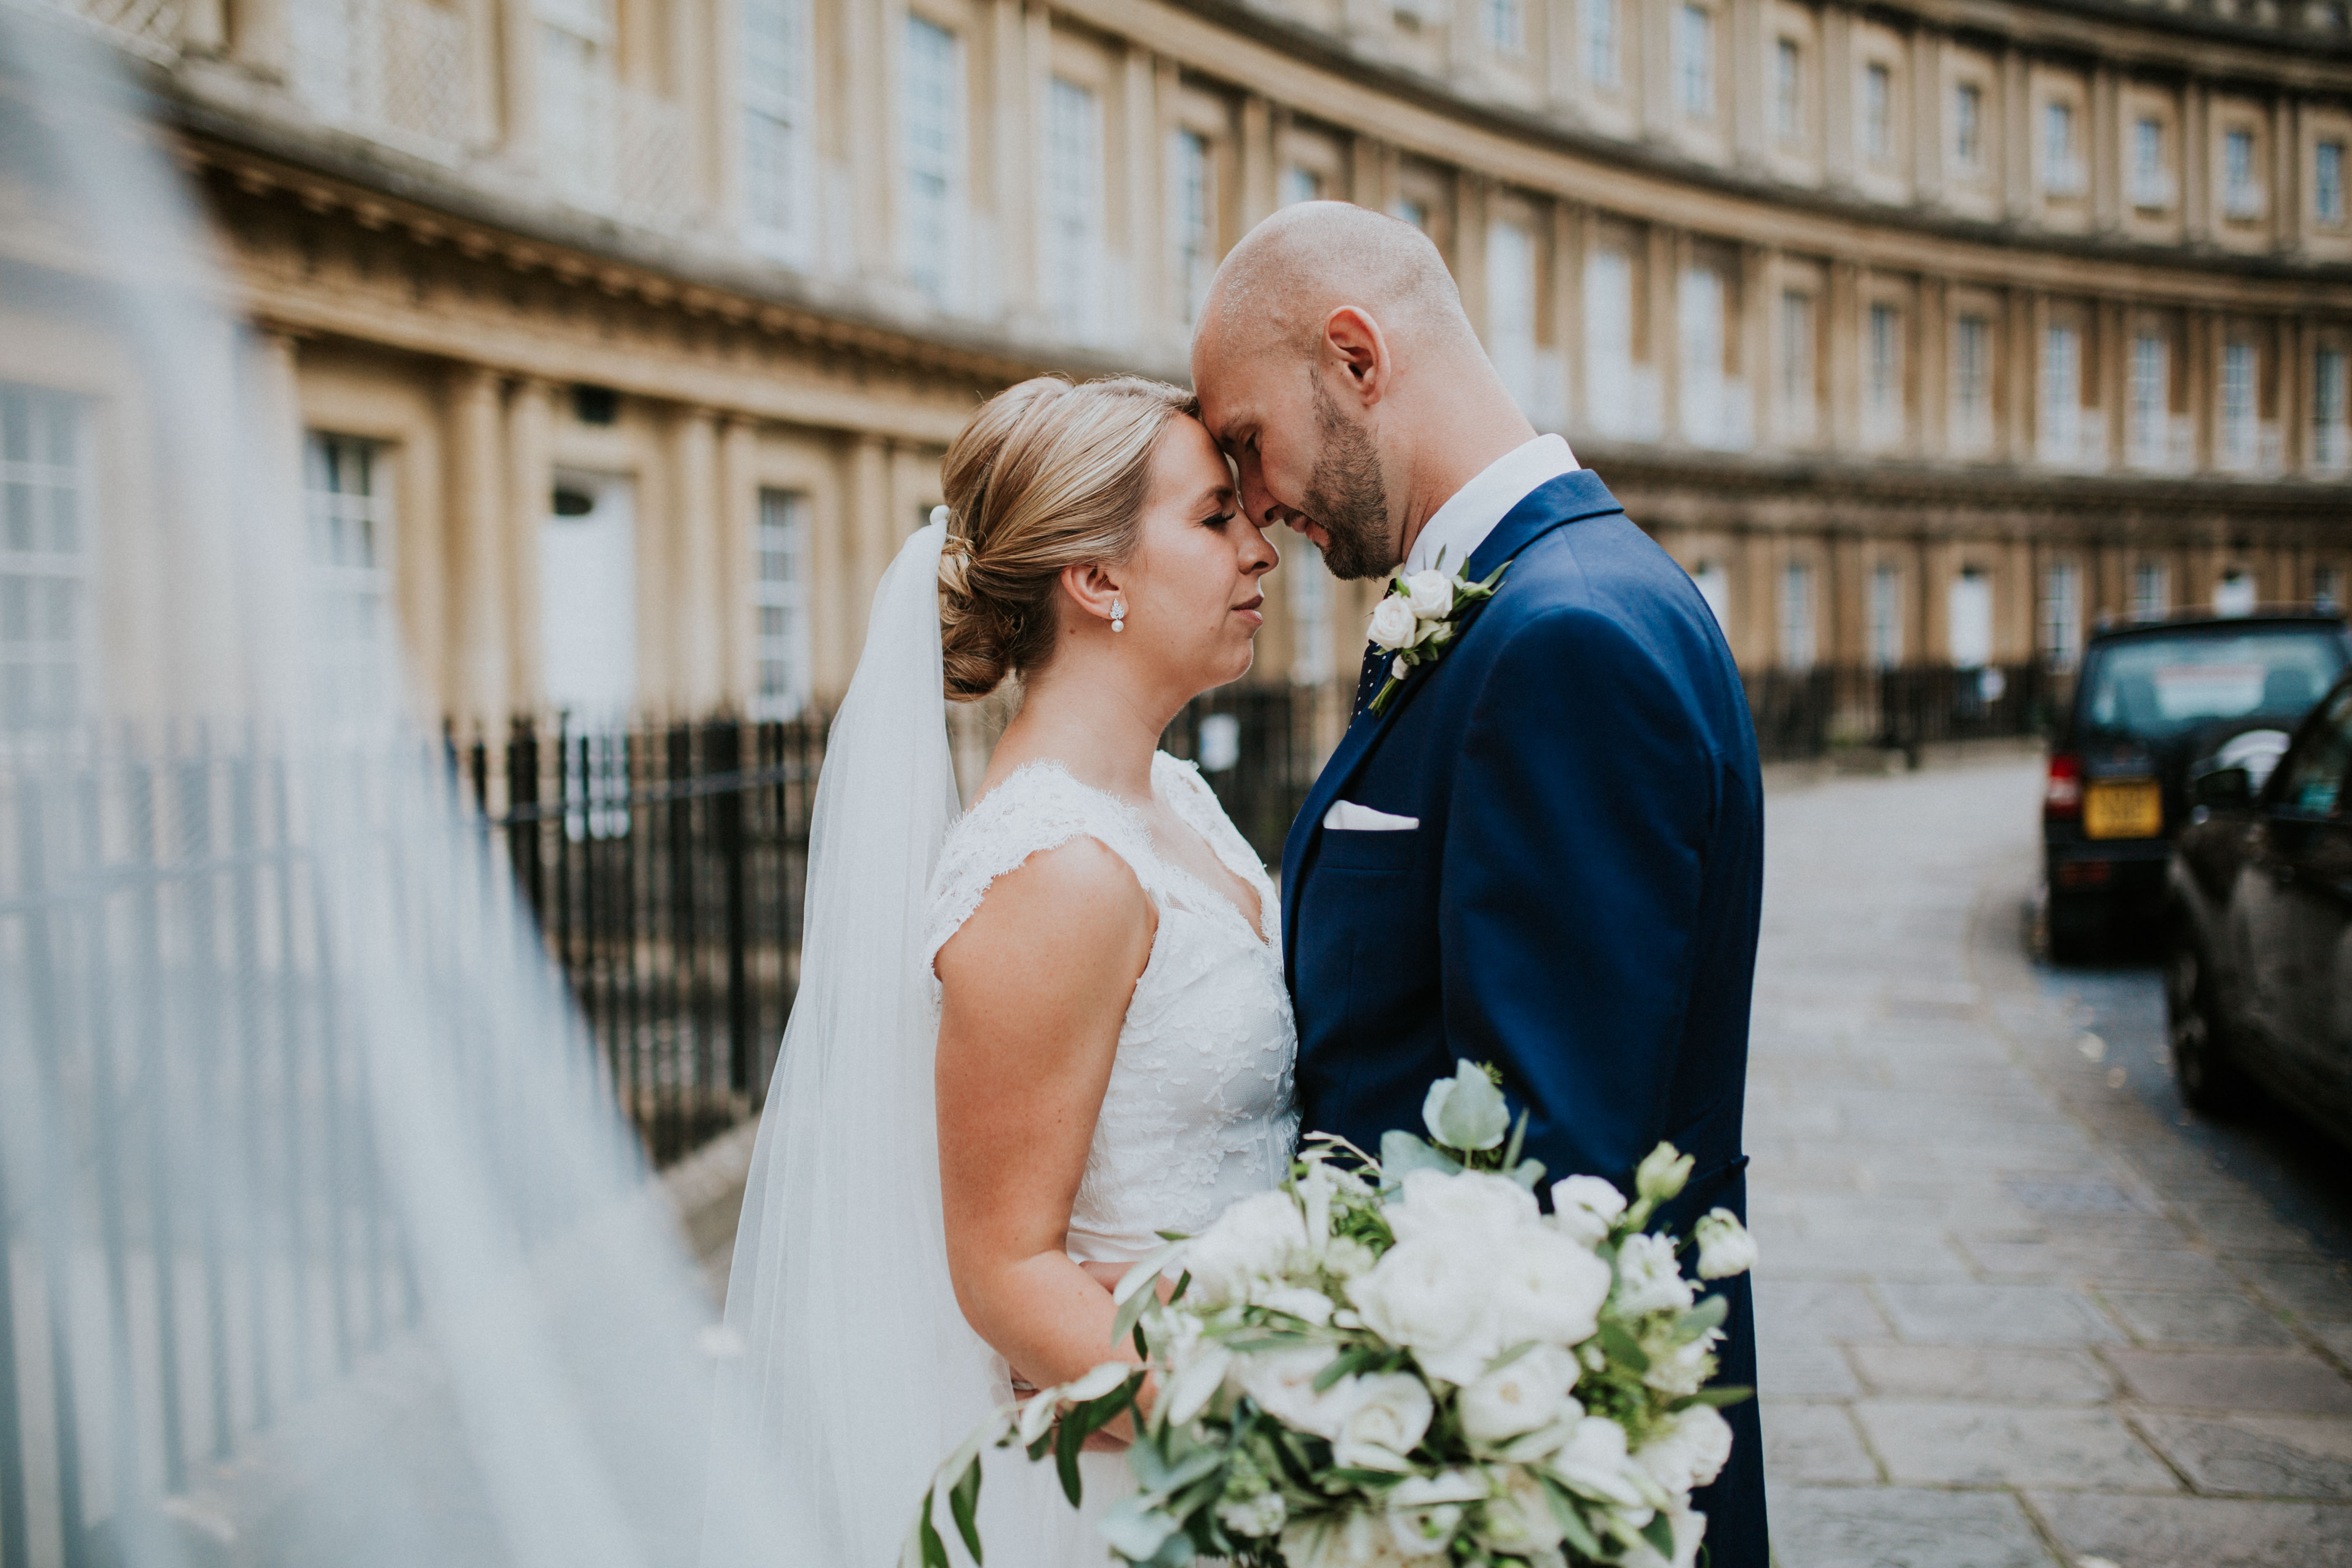 bride and groom portraits in bath square